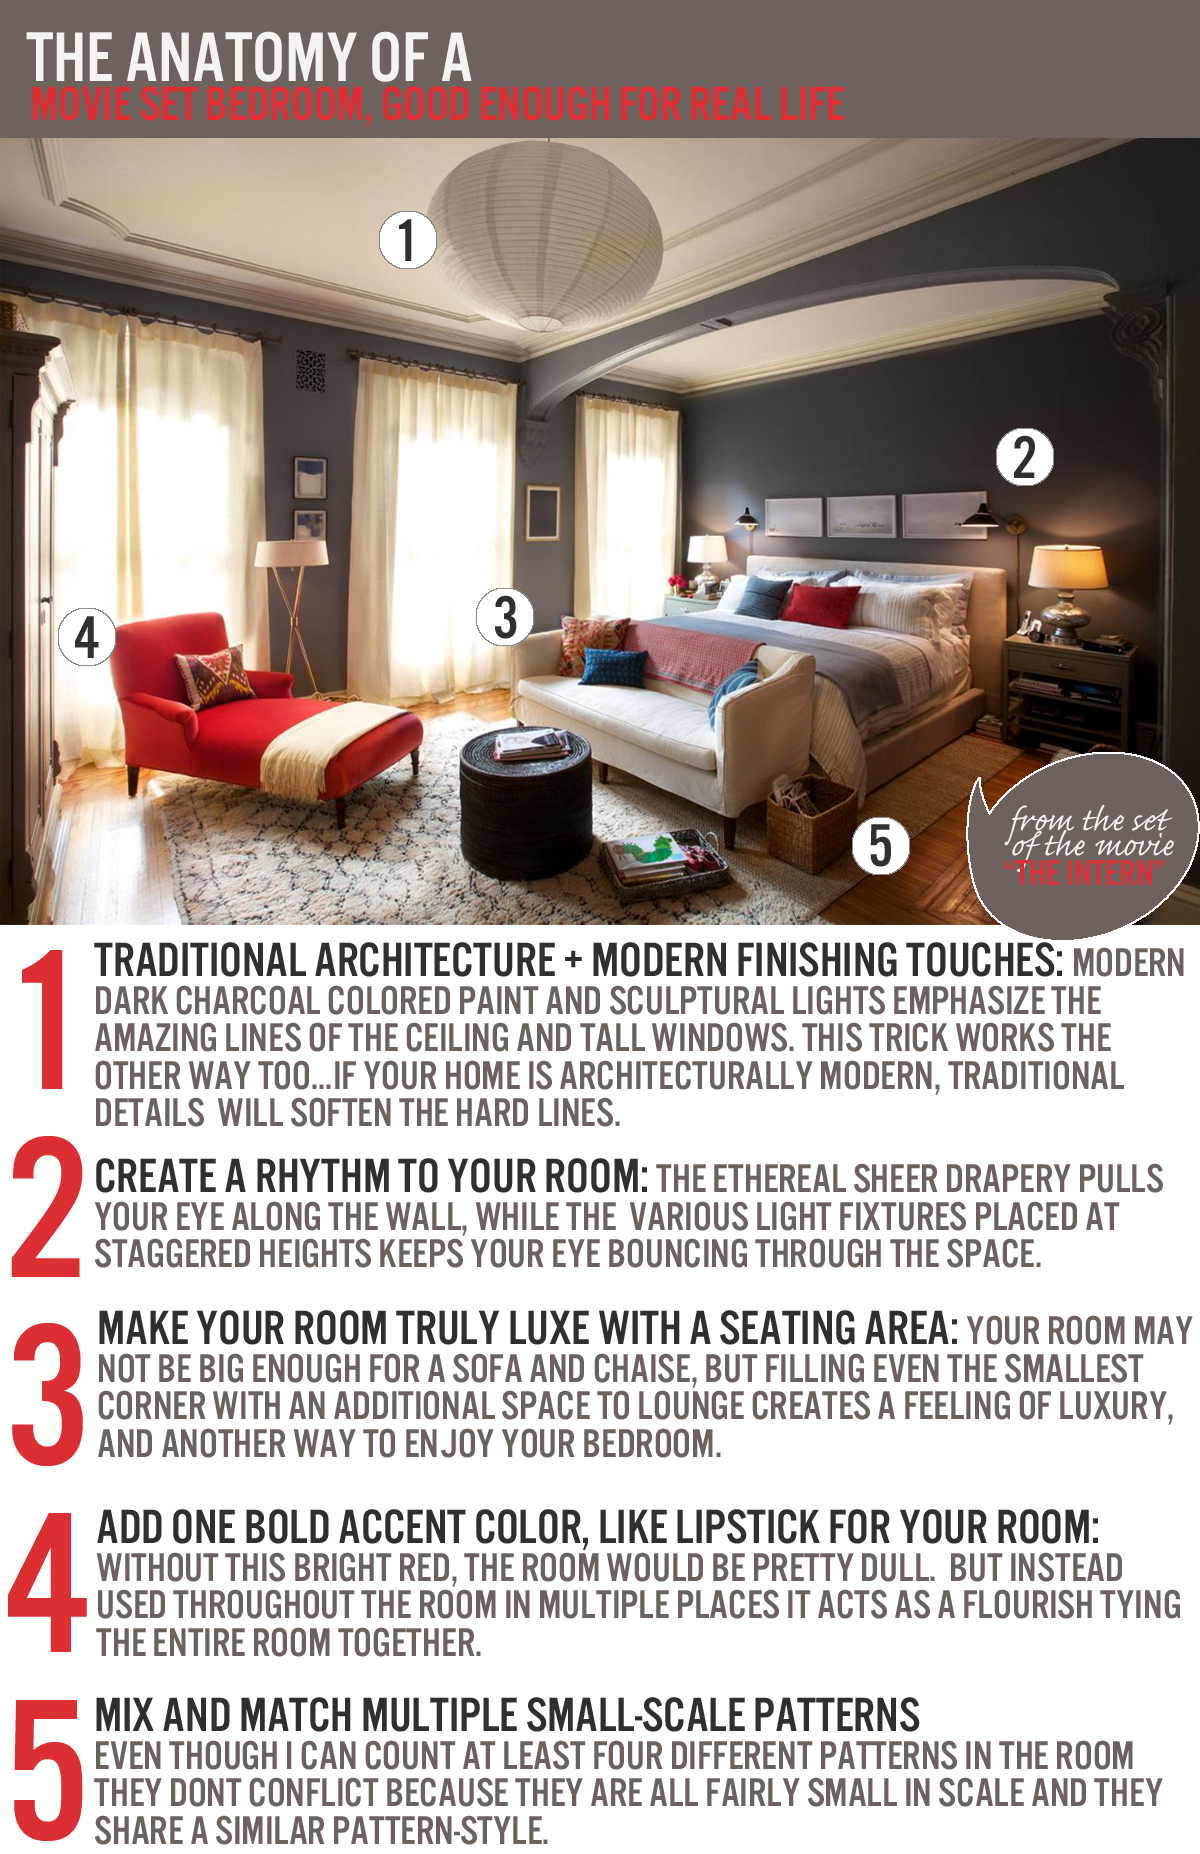 The Anatomy Of Bedroom From